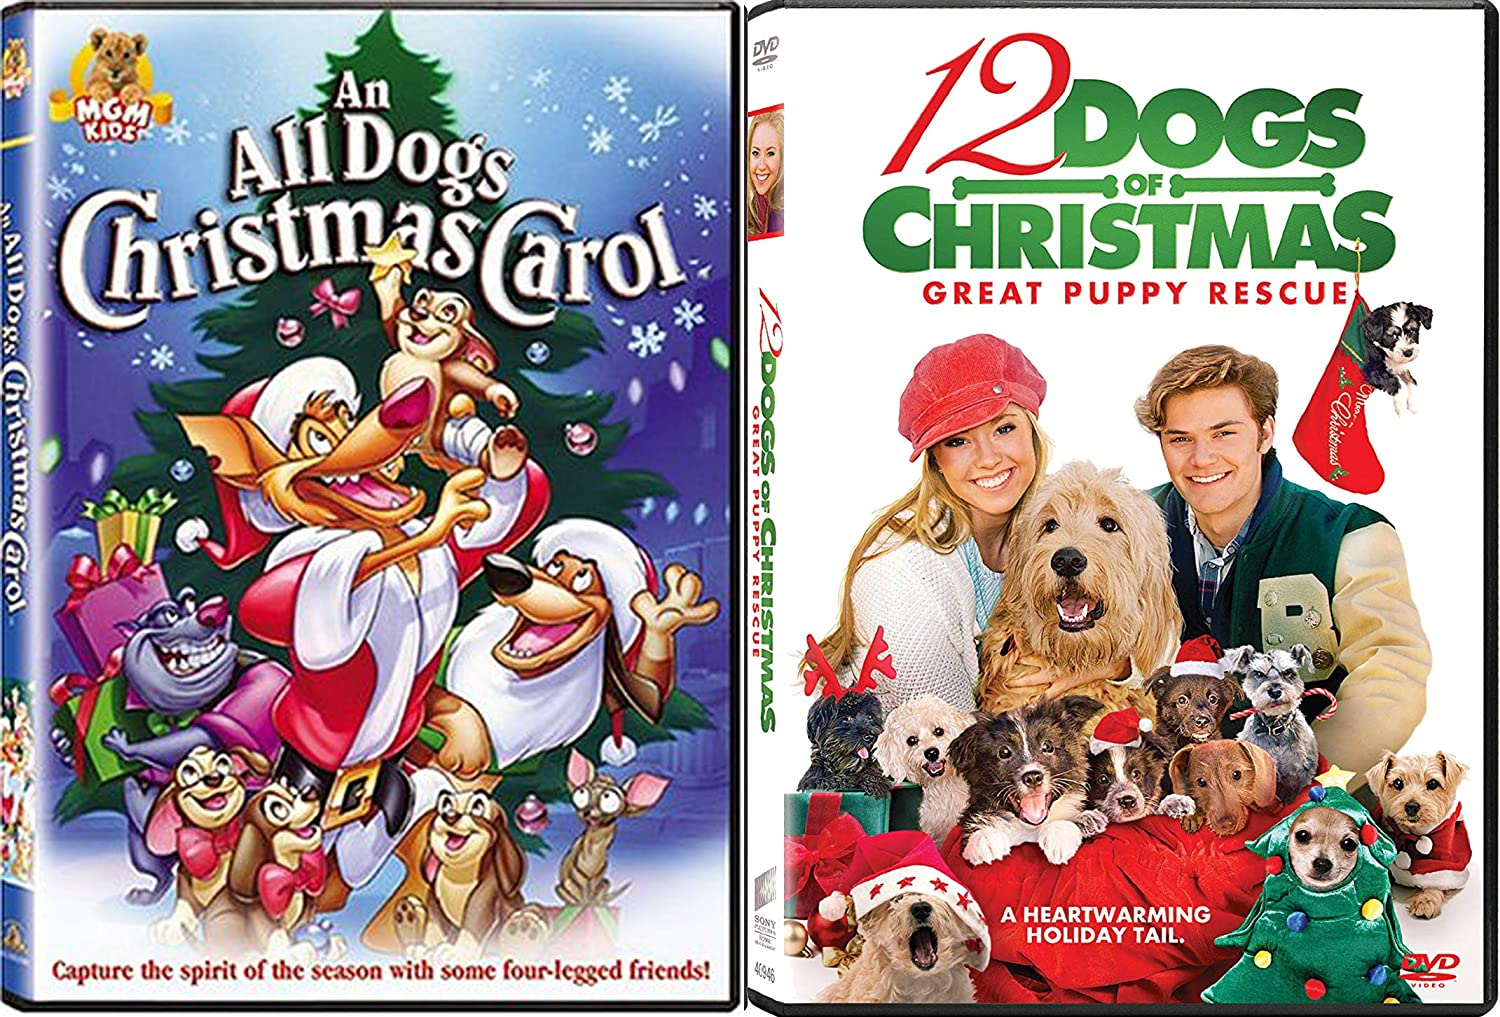 Holiday Pups and Doggy's Have Fun Too! 12 Dogs of Christmas: Great Puppy Rescue & All Dogs Christmas Carol 2-DVD Bundle